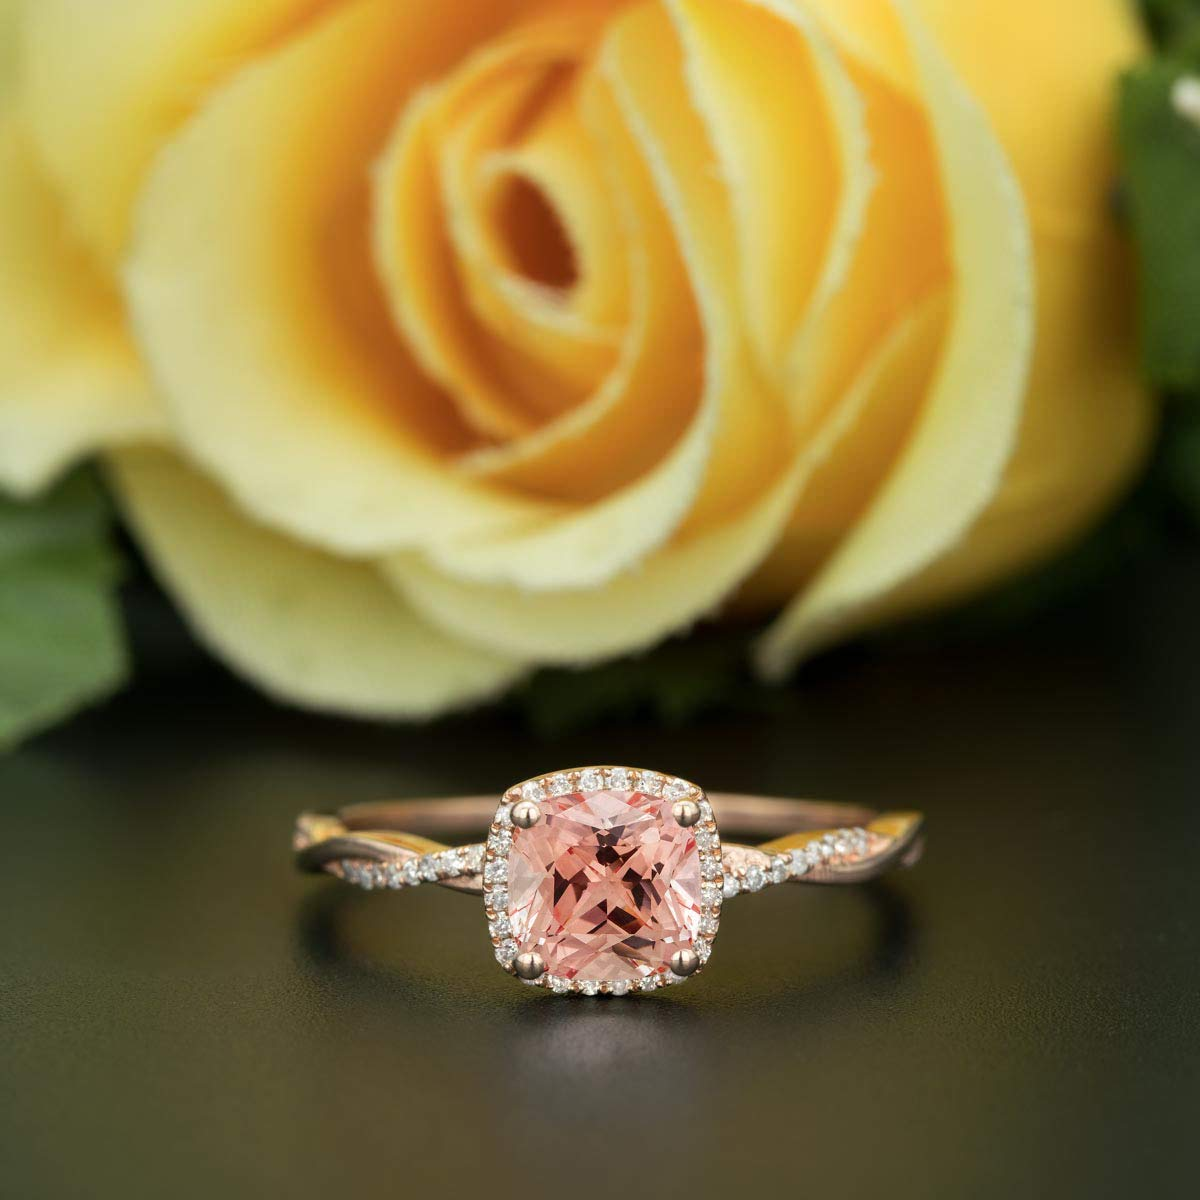 1.50 Carat Cushion Cut Morganite and Diamond Halo Engagement Ring In Rose Gold 61qkiAq7goL._SL1200_